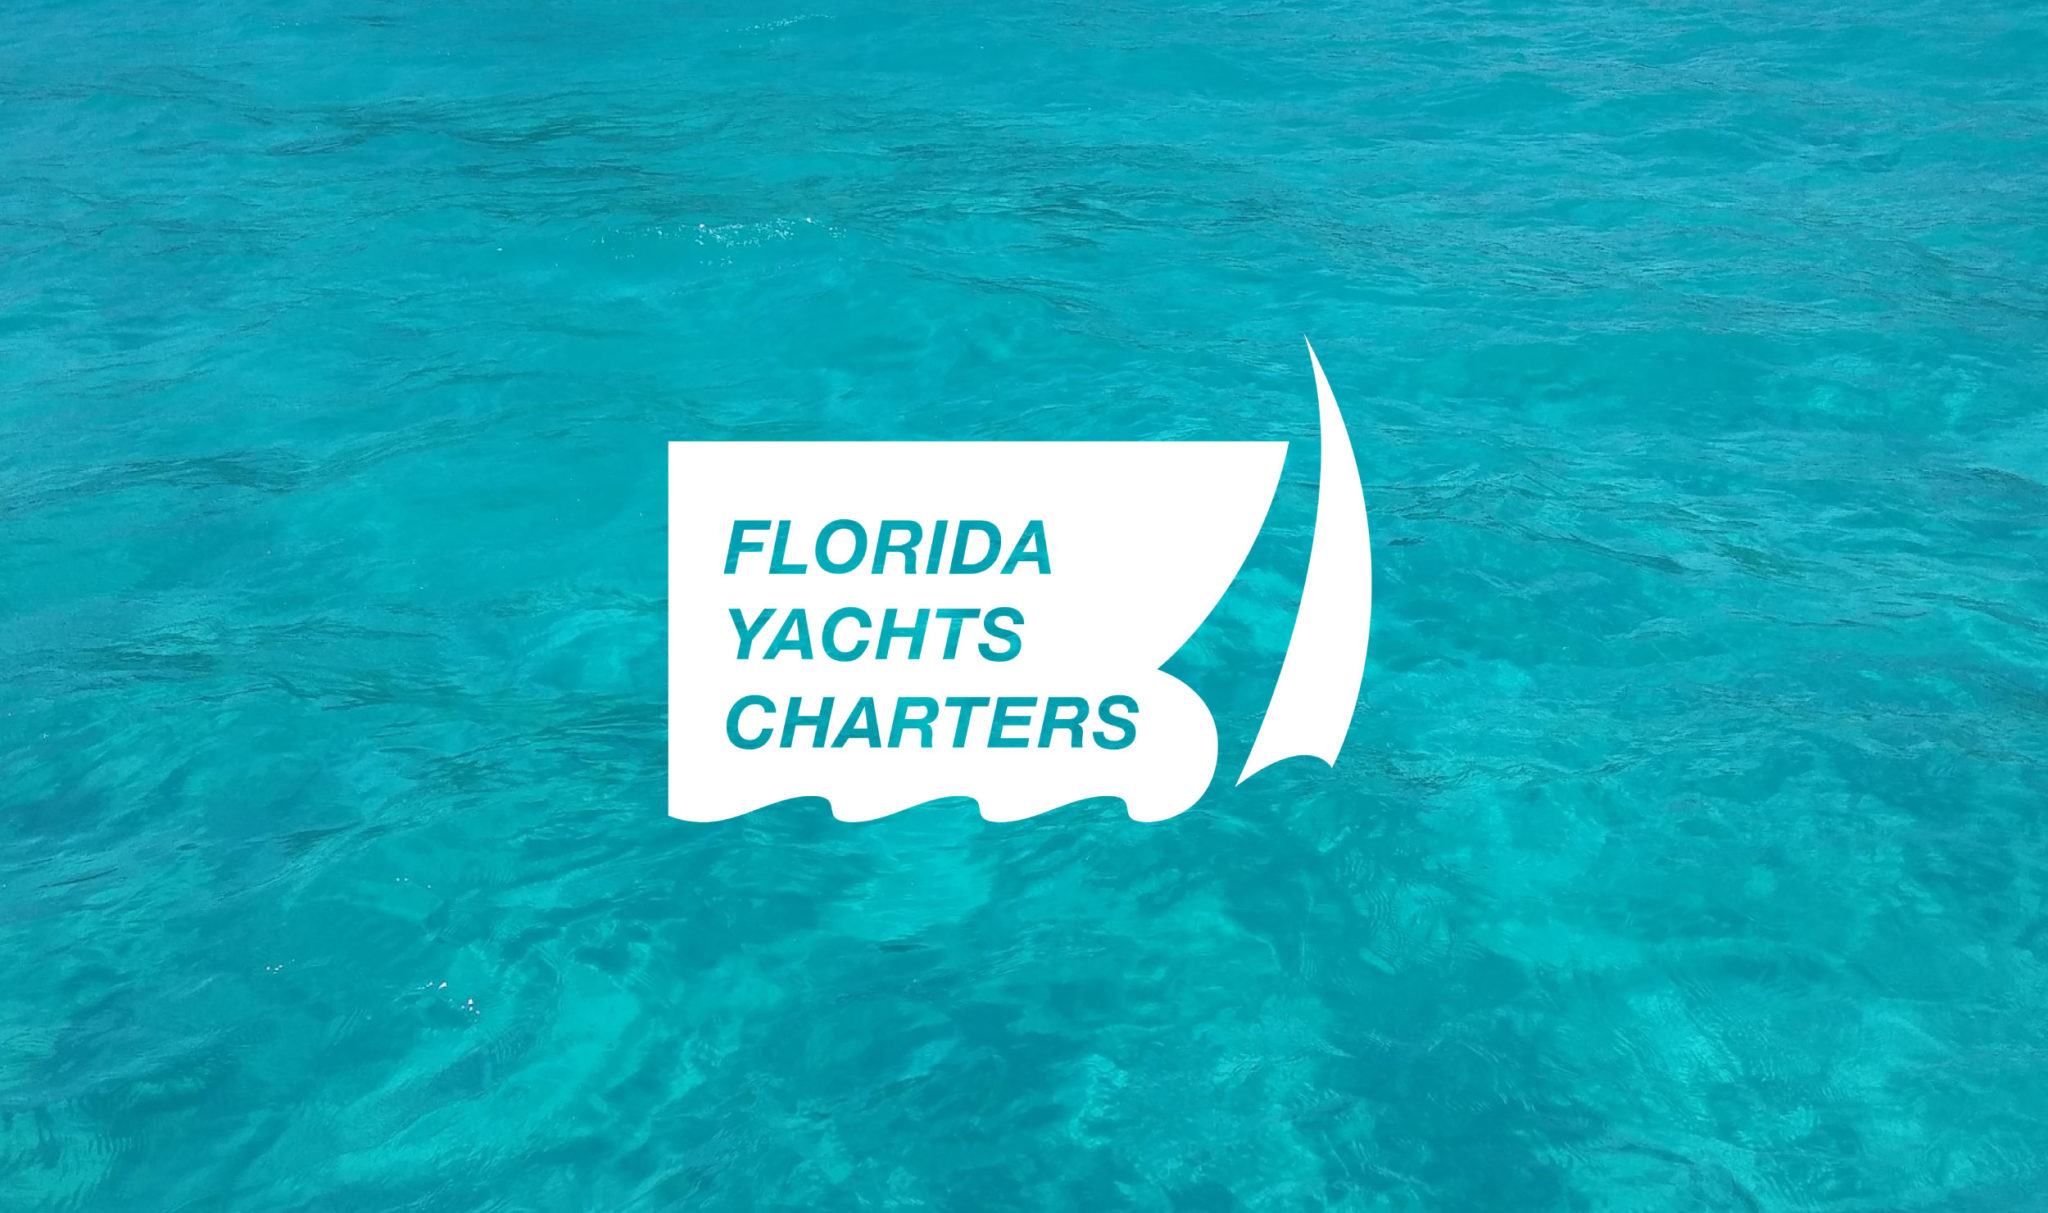 Florida Yacht Charters logo